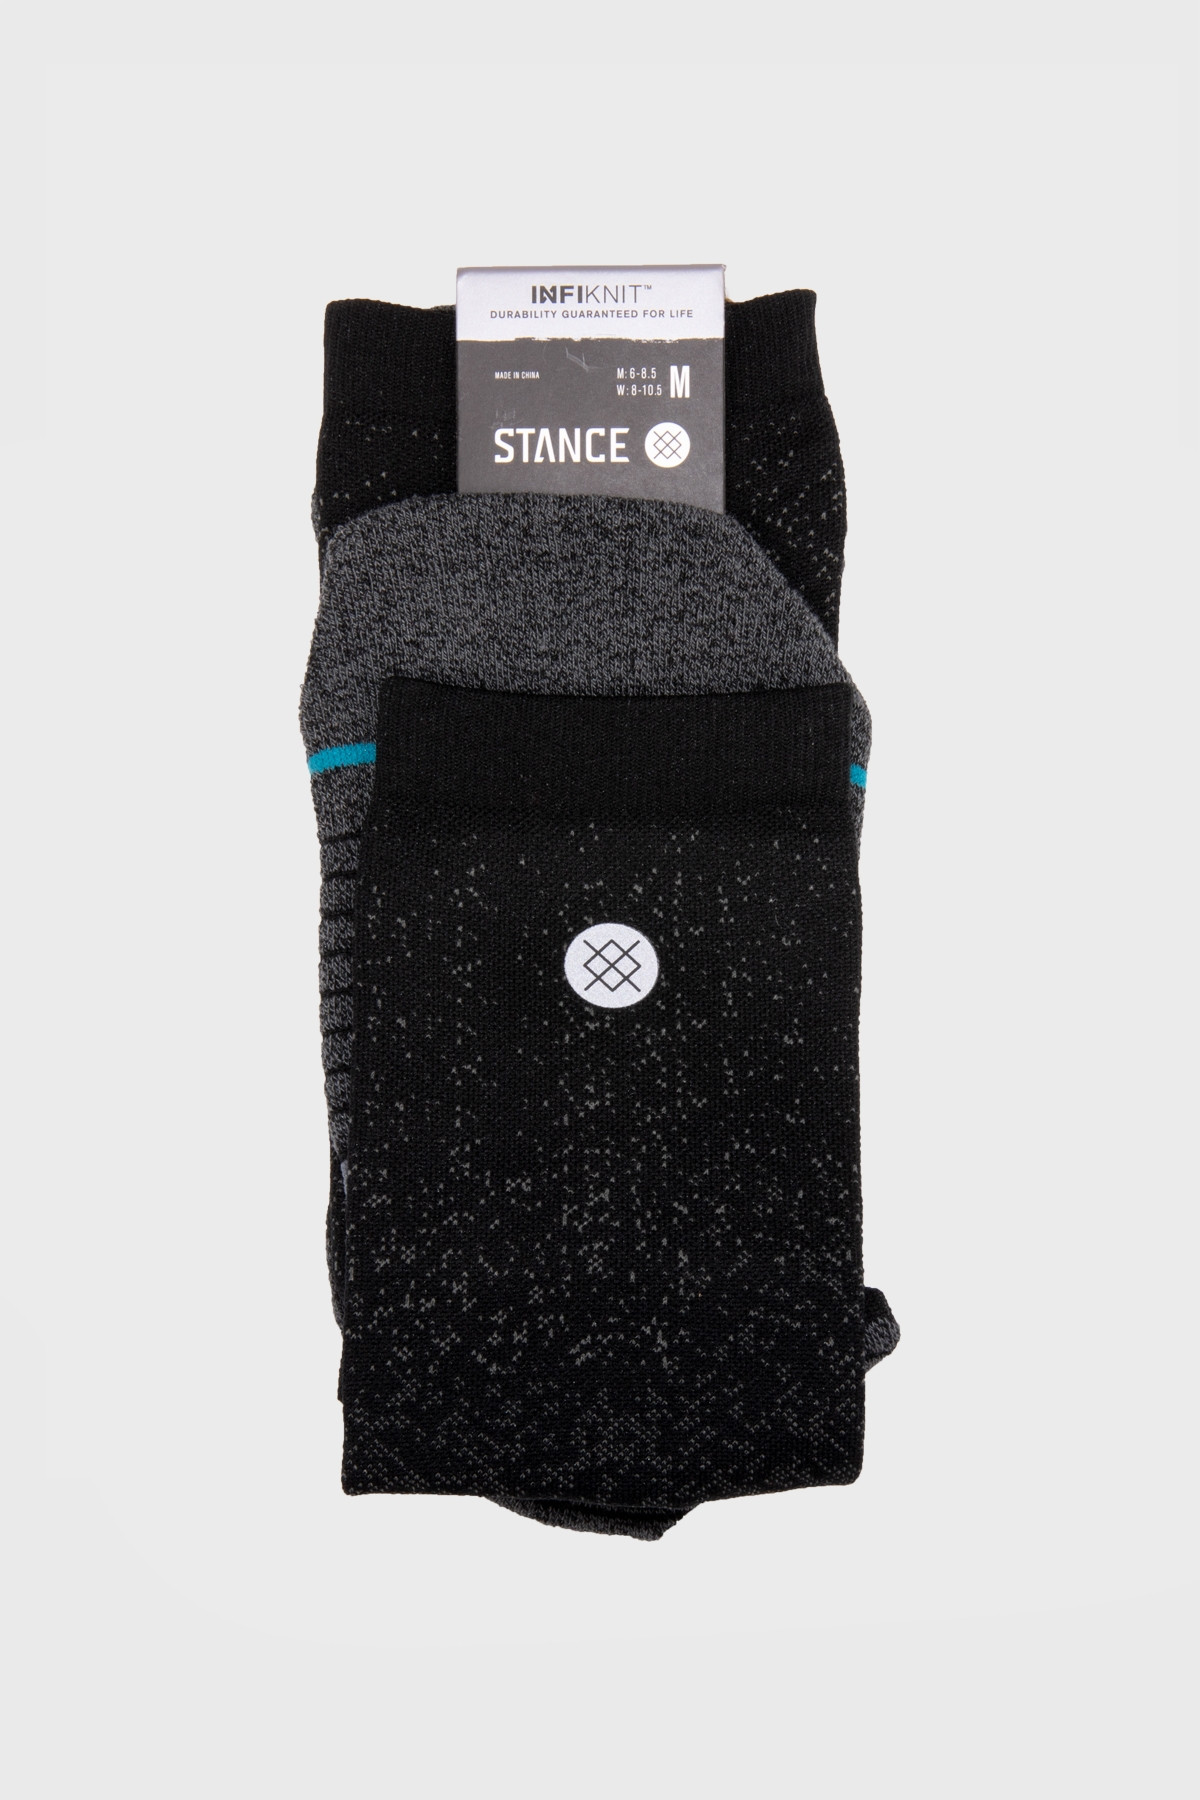 Stance - Run crew ST - Black